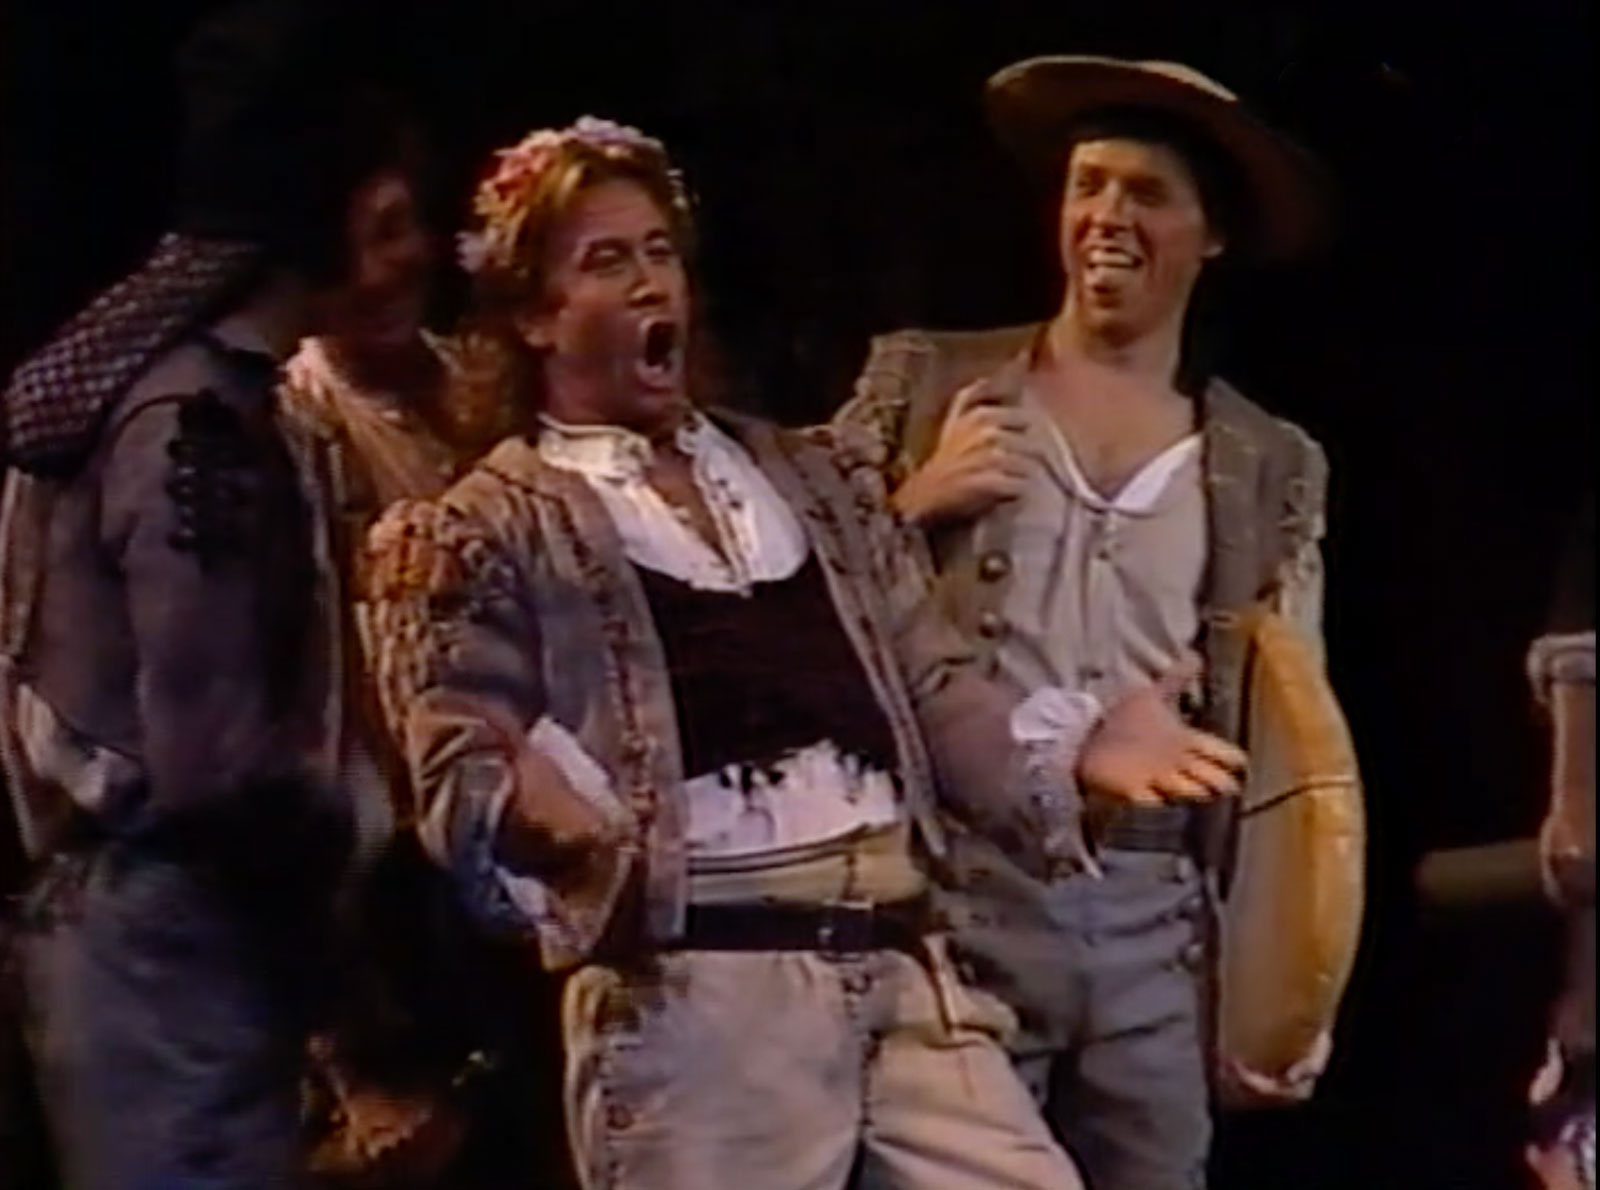 Dean Peterson in the role of Masetto. He is singing about his wedding night in Don Giovanni.